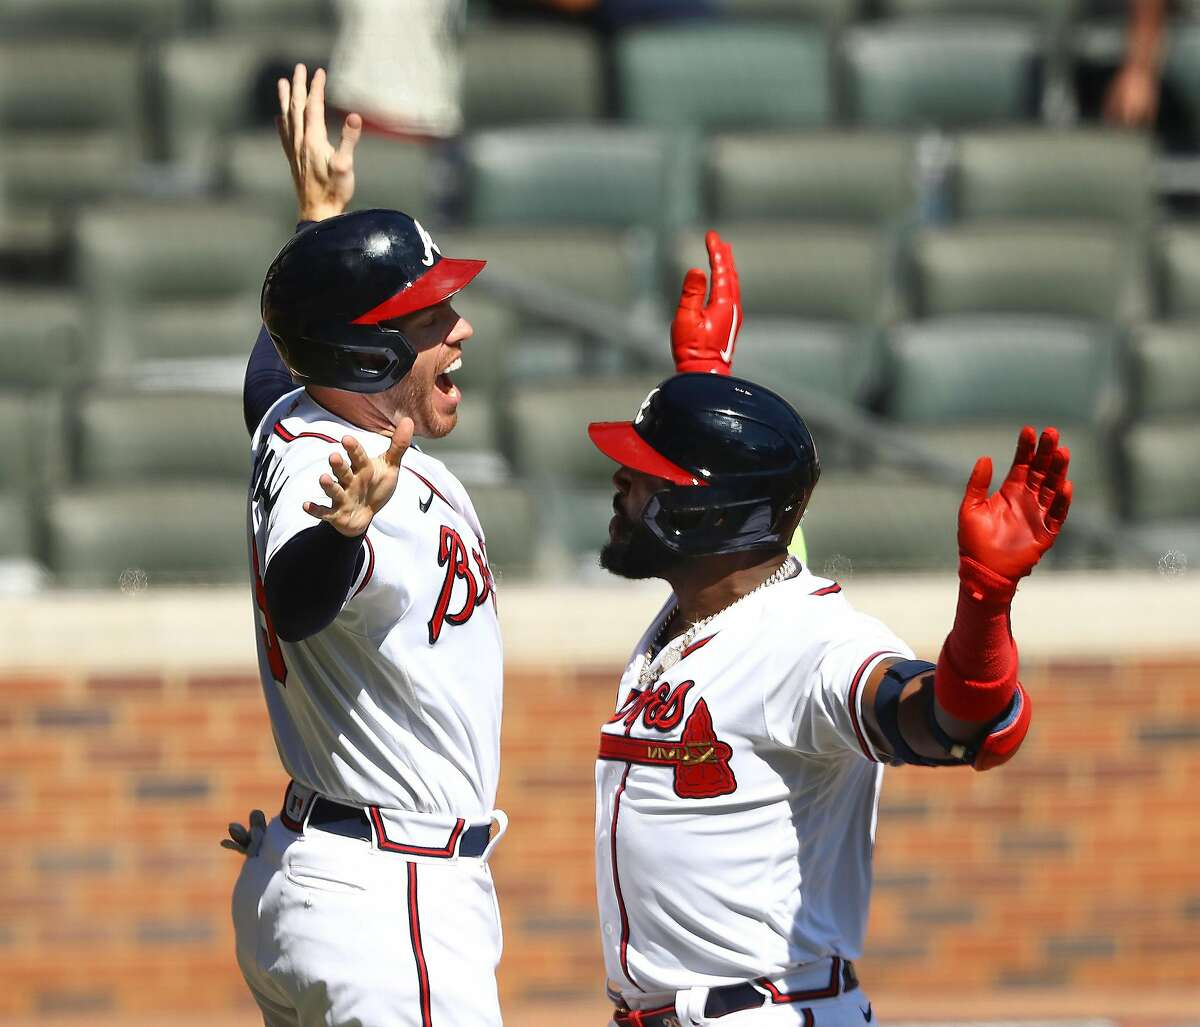 Atlanta Braves Marcell Ozuna, right, gets a double hive five from Freddie Freeman, left, as they celebrate Ozuna hitting a 2-run homer to take a 3-0 lead over the Reds during the 8th inning of Game 2 in the National League wild card playoff series on Thursday, Oct 1, 2020 in Atlanta. The Braves beat the Reds 5-0 for the two game sweep to advance. (Curtis Compton/Atlanta Journal-Constitution/TNS)